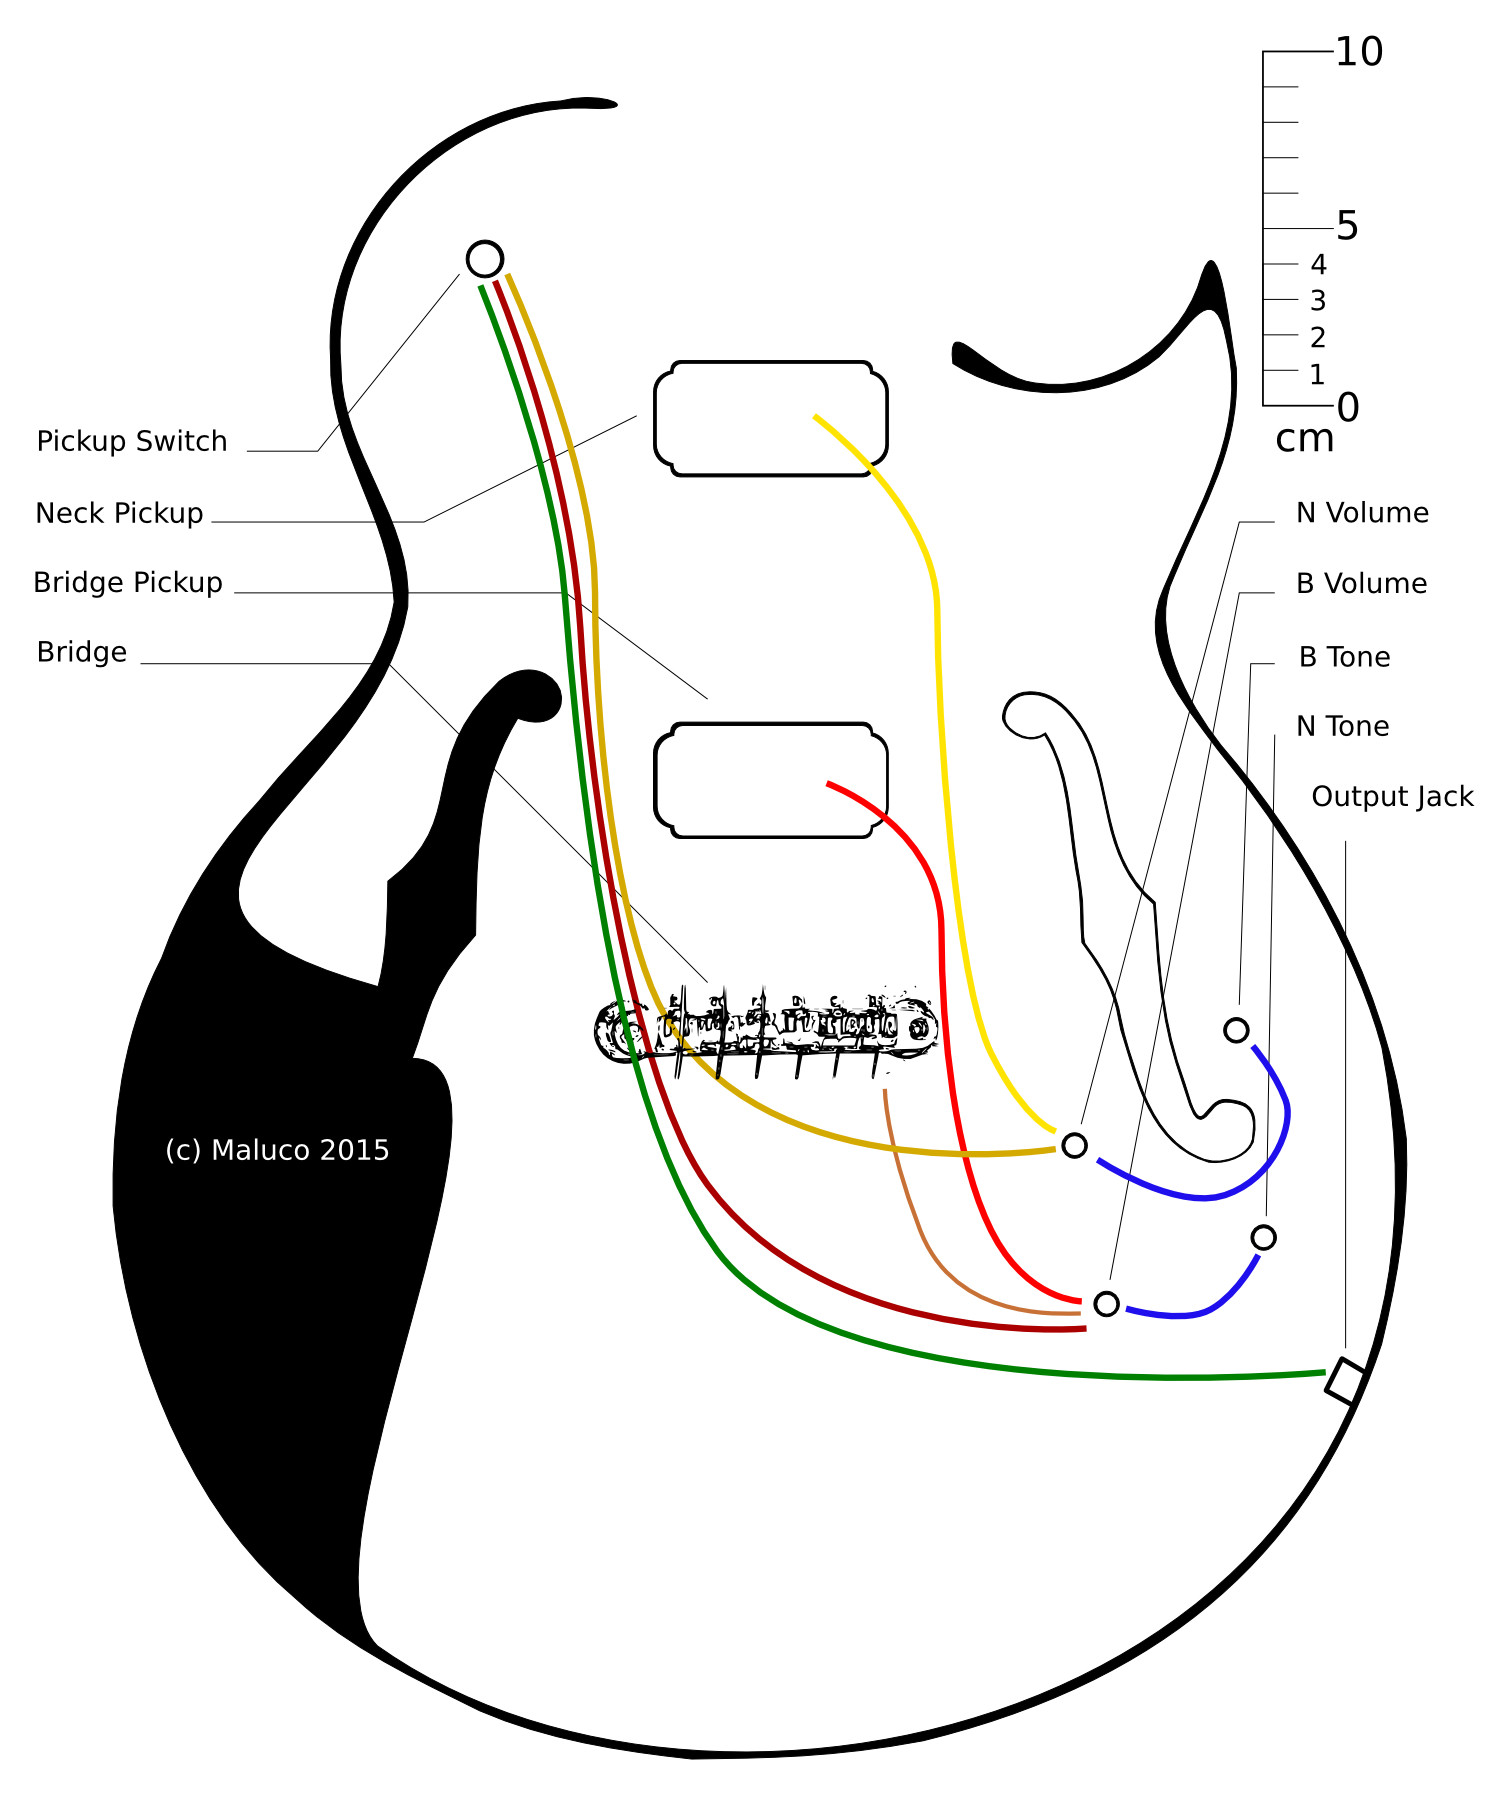 wiring diagram 1 volume 2 tone images humbucker 1 volume 11 samick b guitar two tone one volume wiring schematic